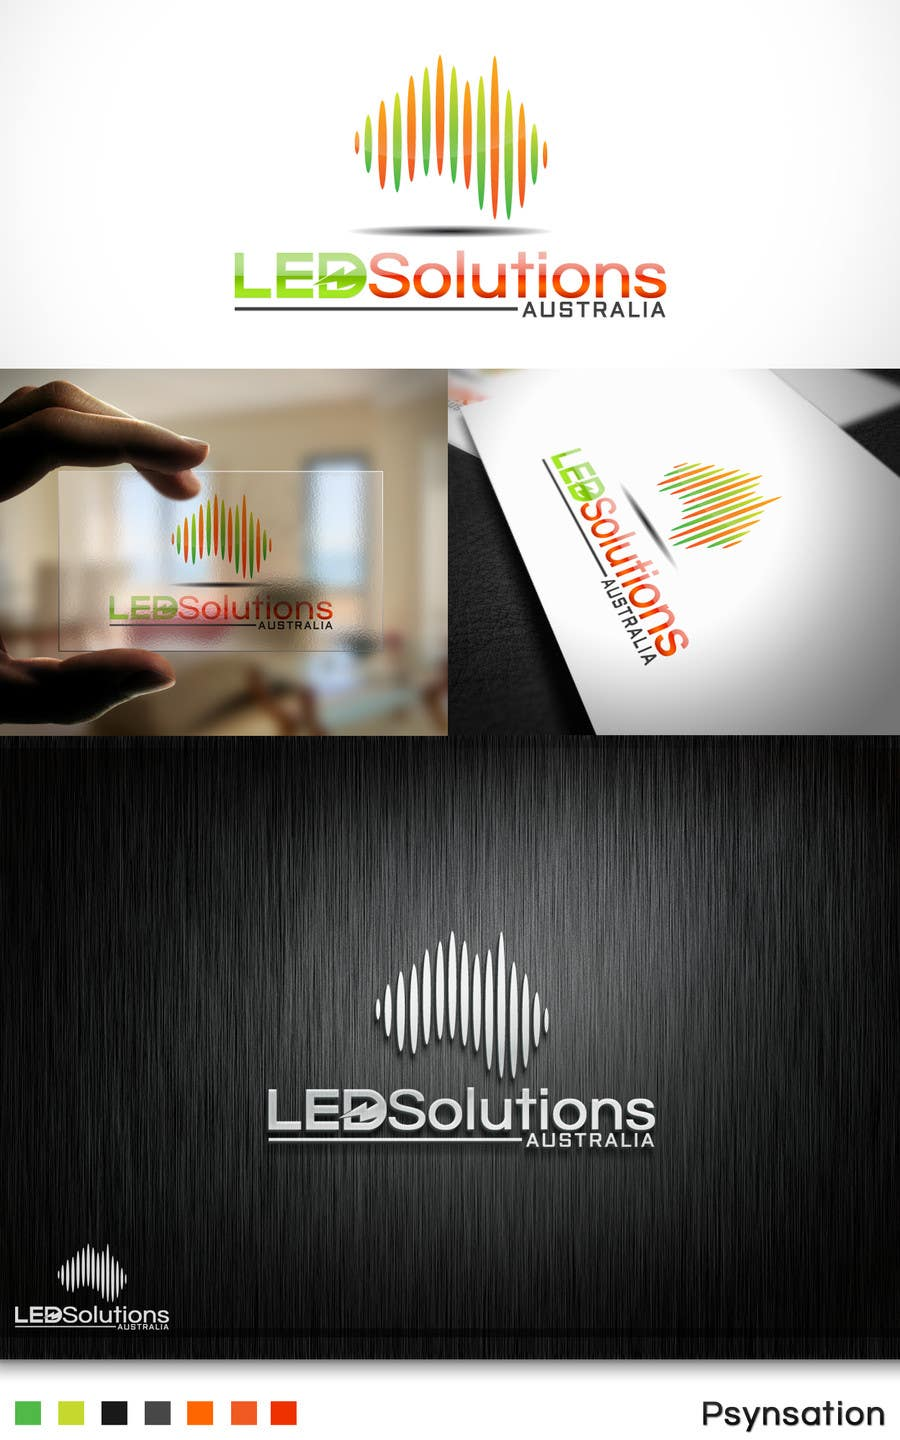 #32 for Update a Logo for LED Solutions Australia by Psynsation